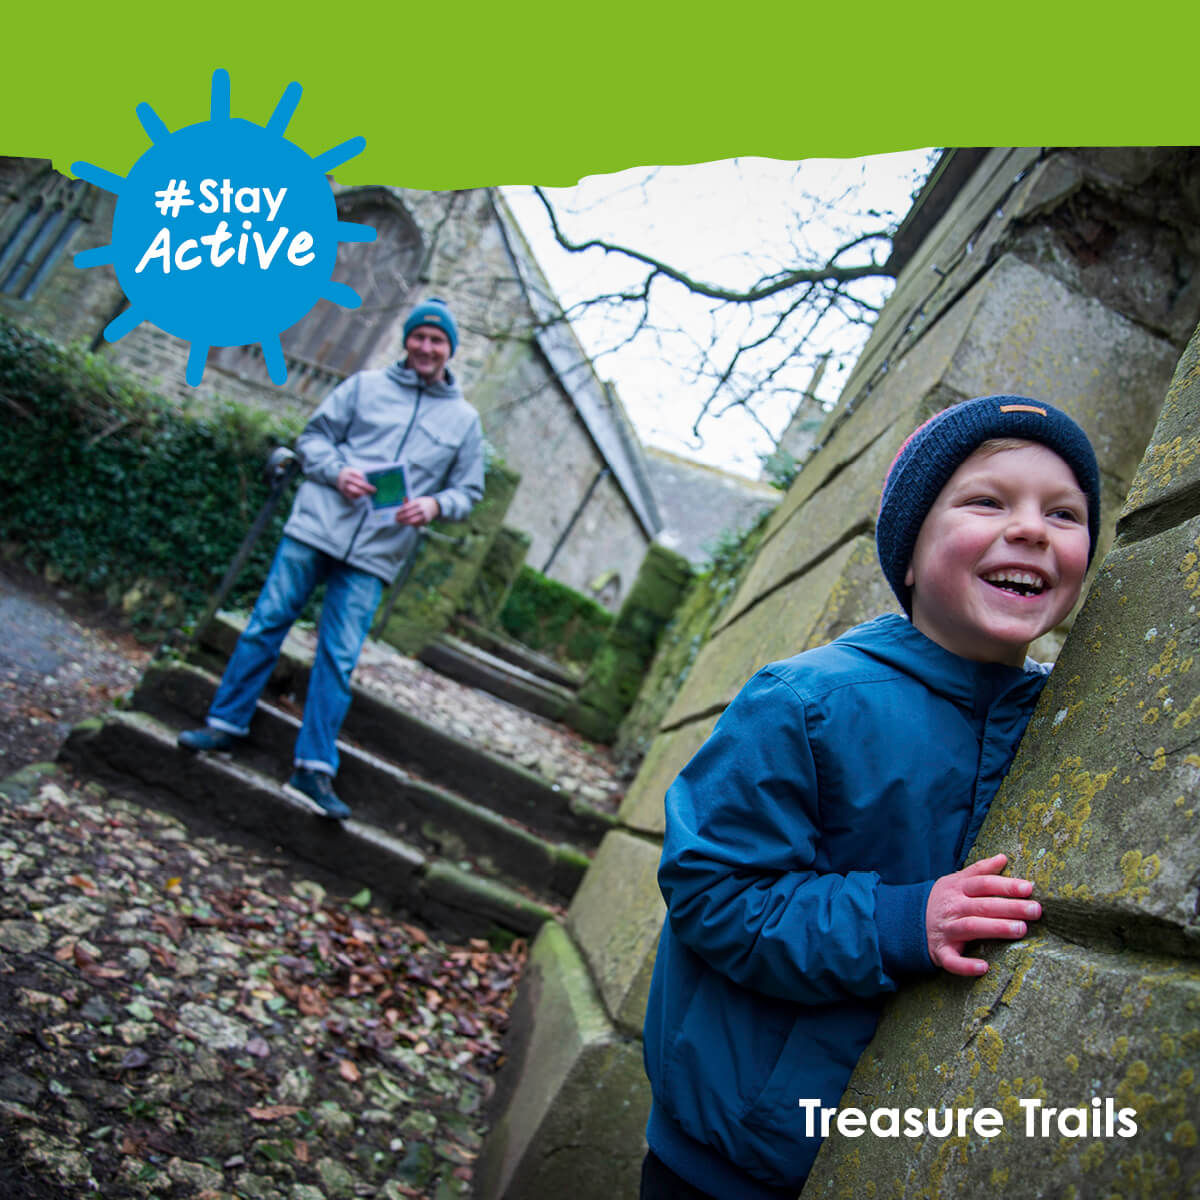 Stay active with Treasure Trails 2021